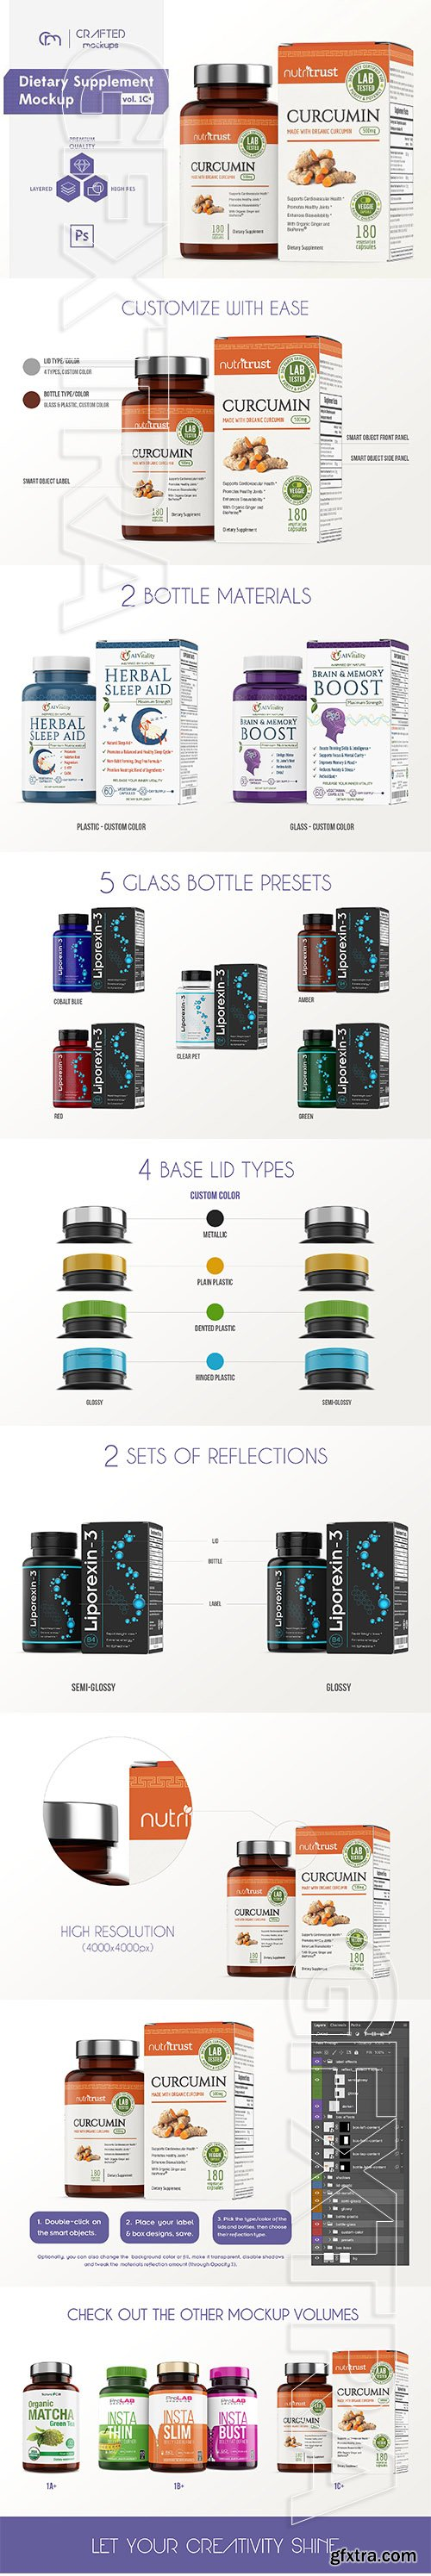 CreativeMarket - Dietary Supplement Mockup v 1C Plus 2735302